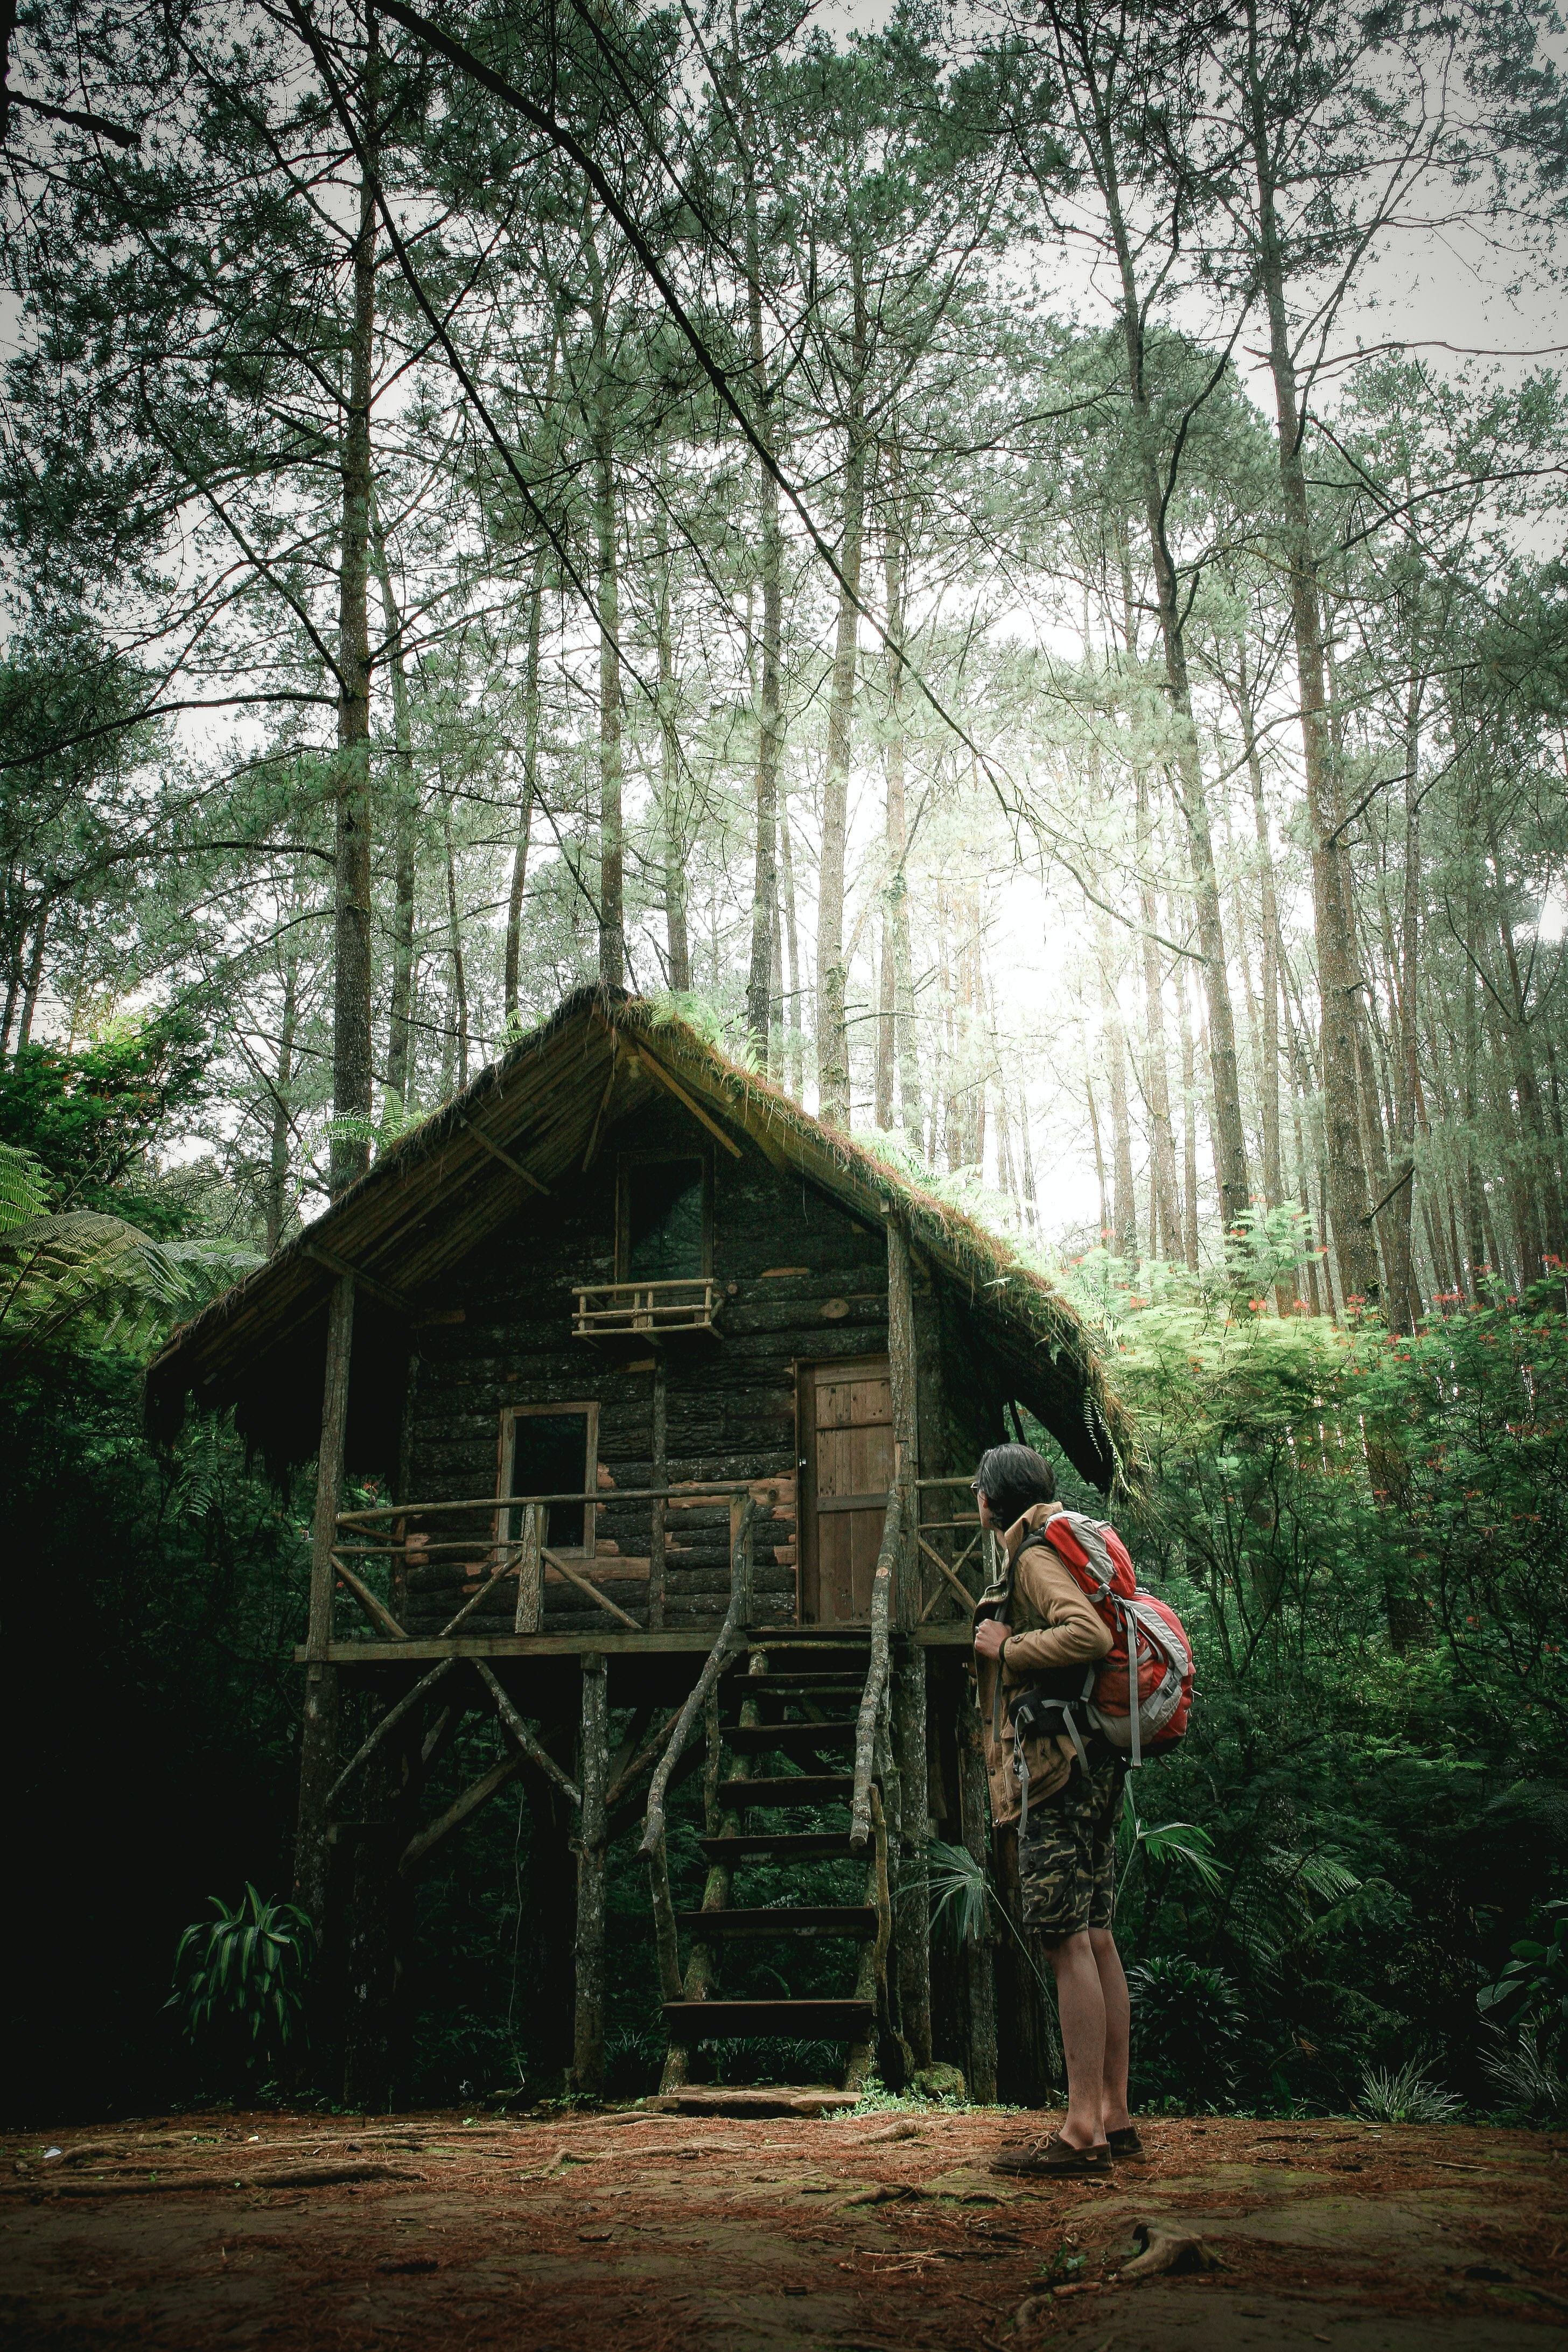 mountaineer standing in the middle of forest nearby hut